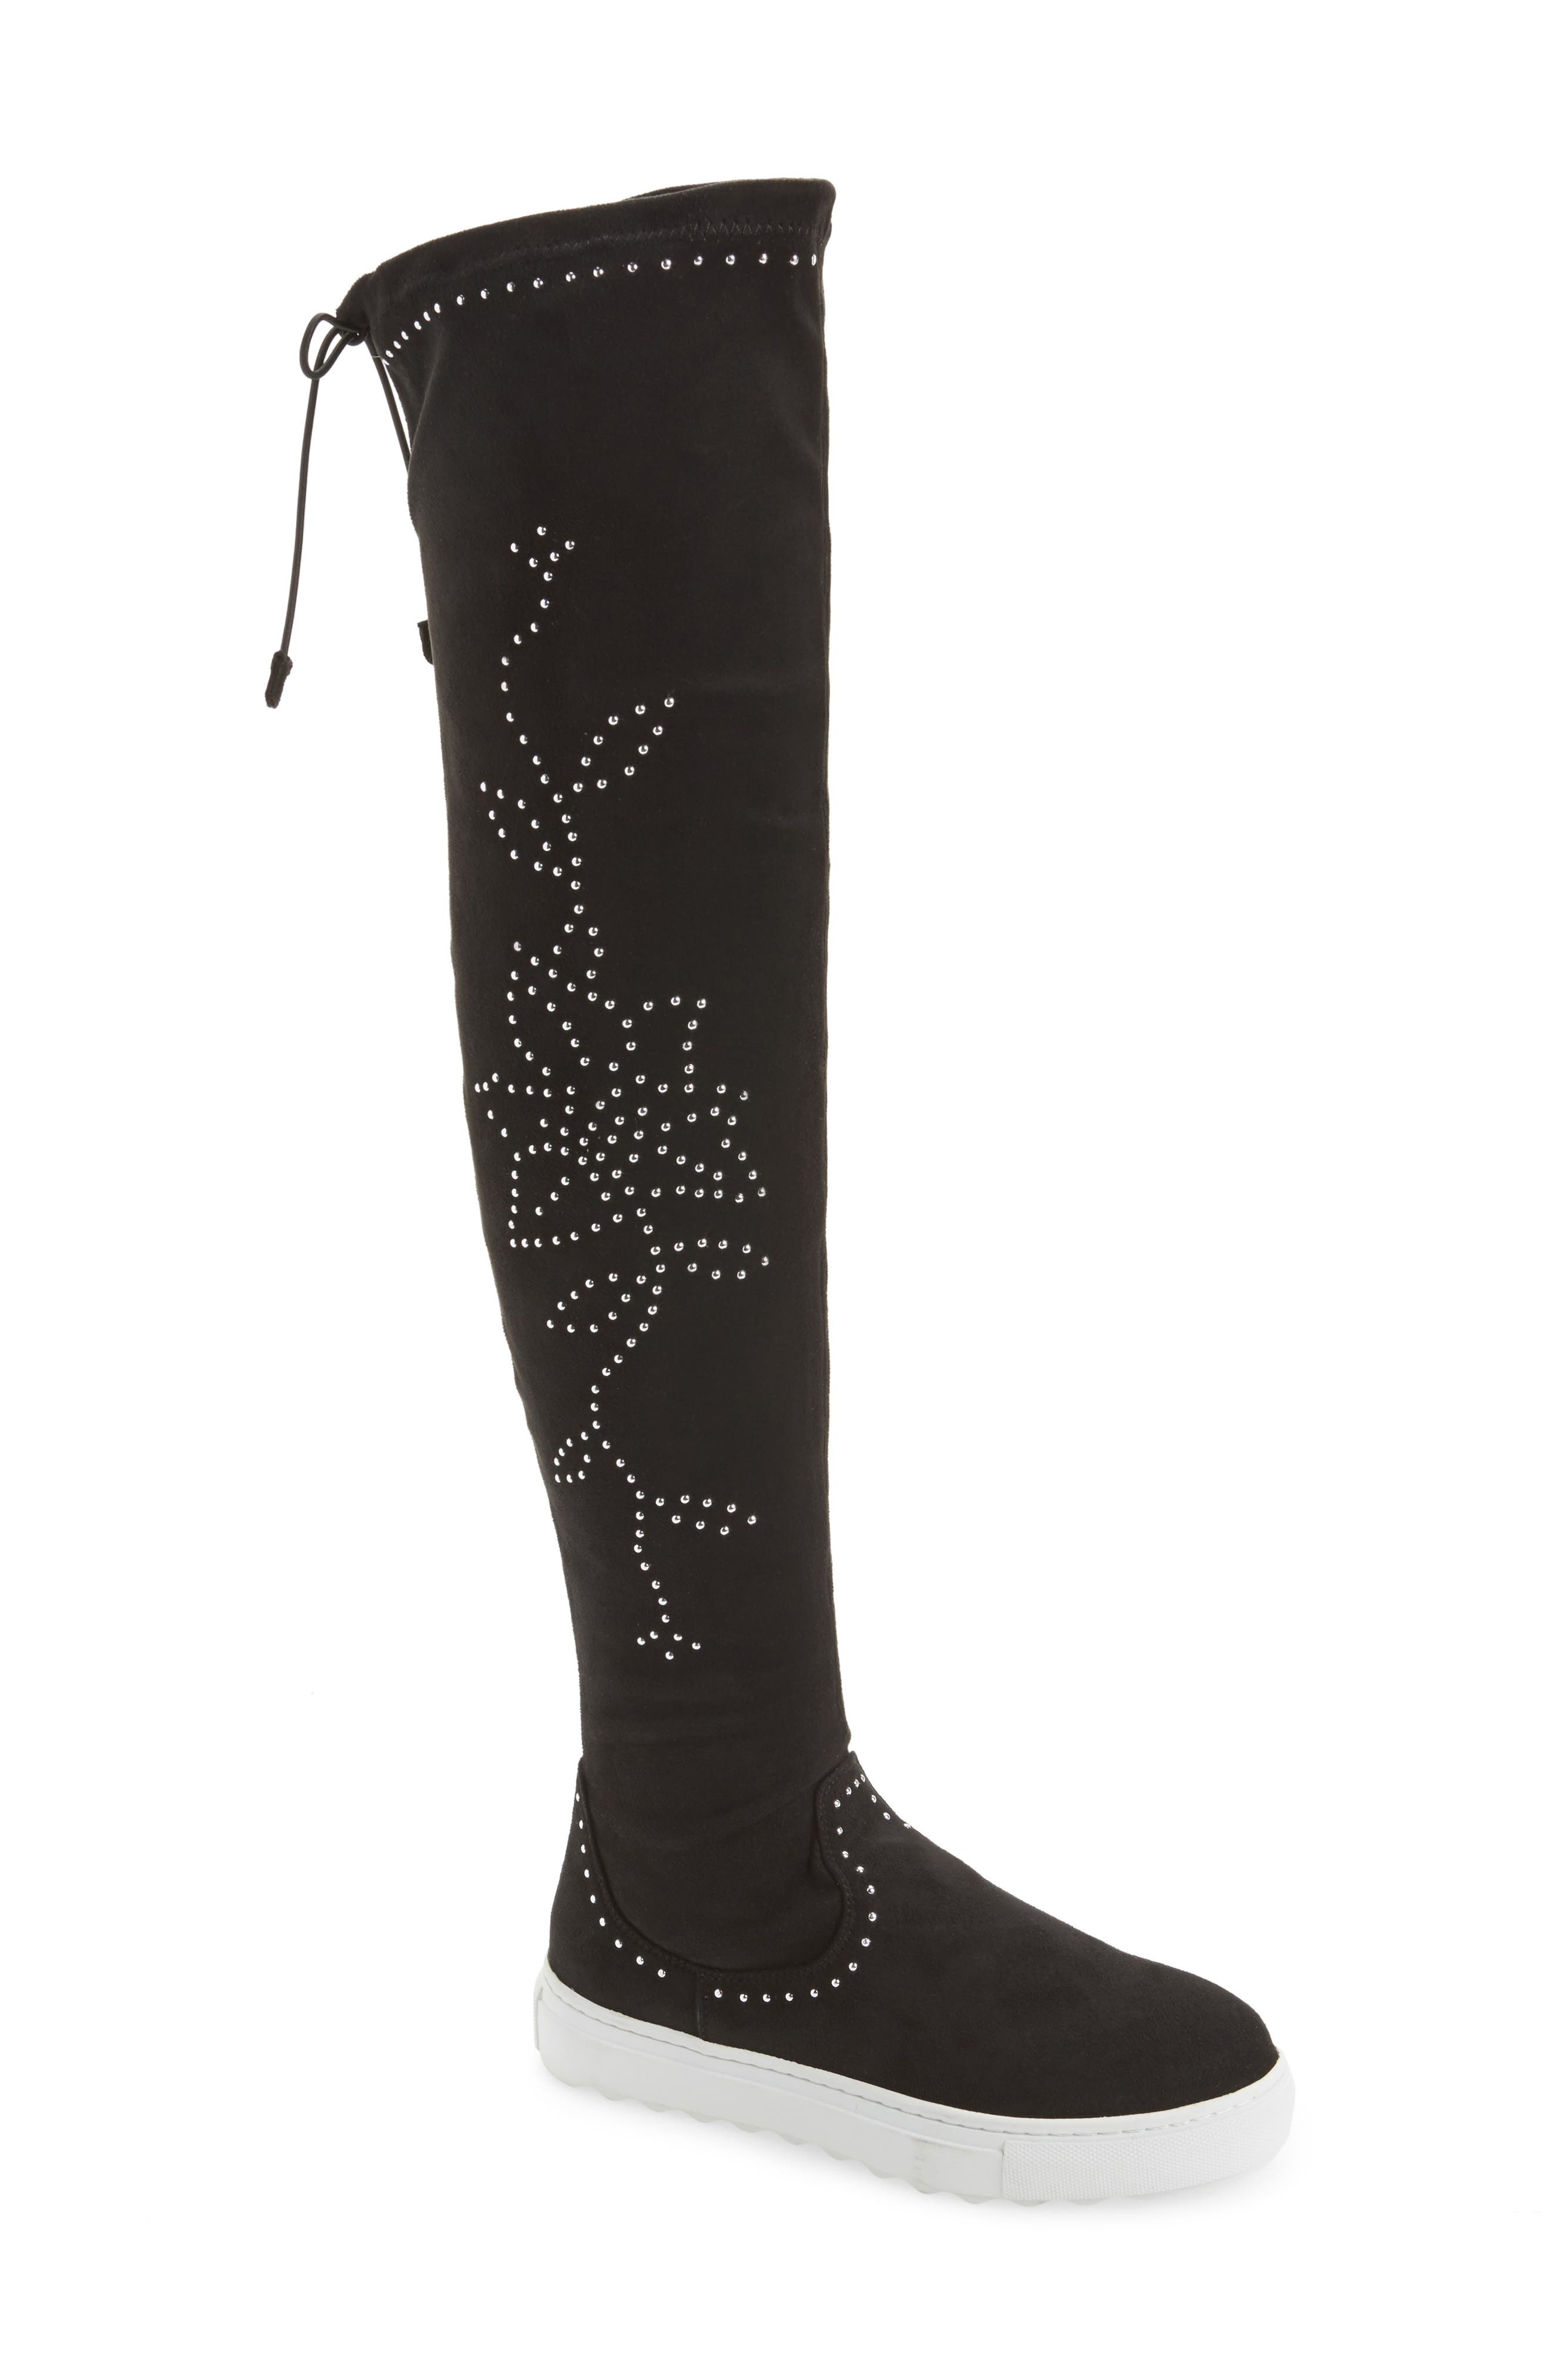 Plentee Over the Knee Boot,                         Main,                         color, 001